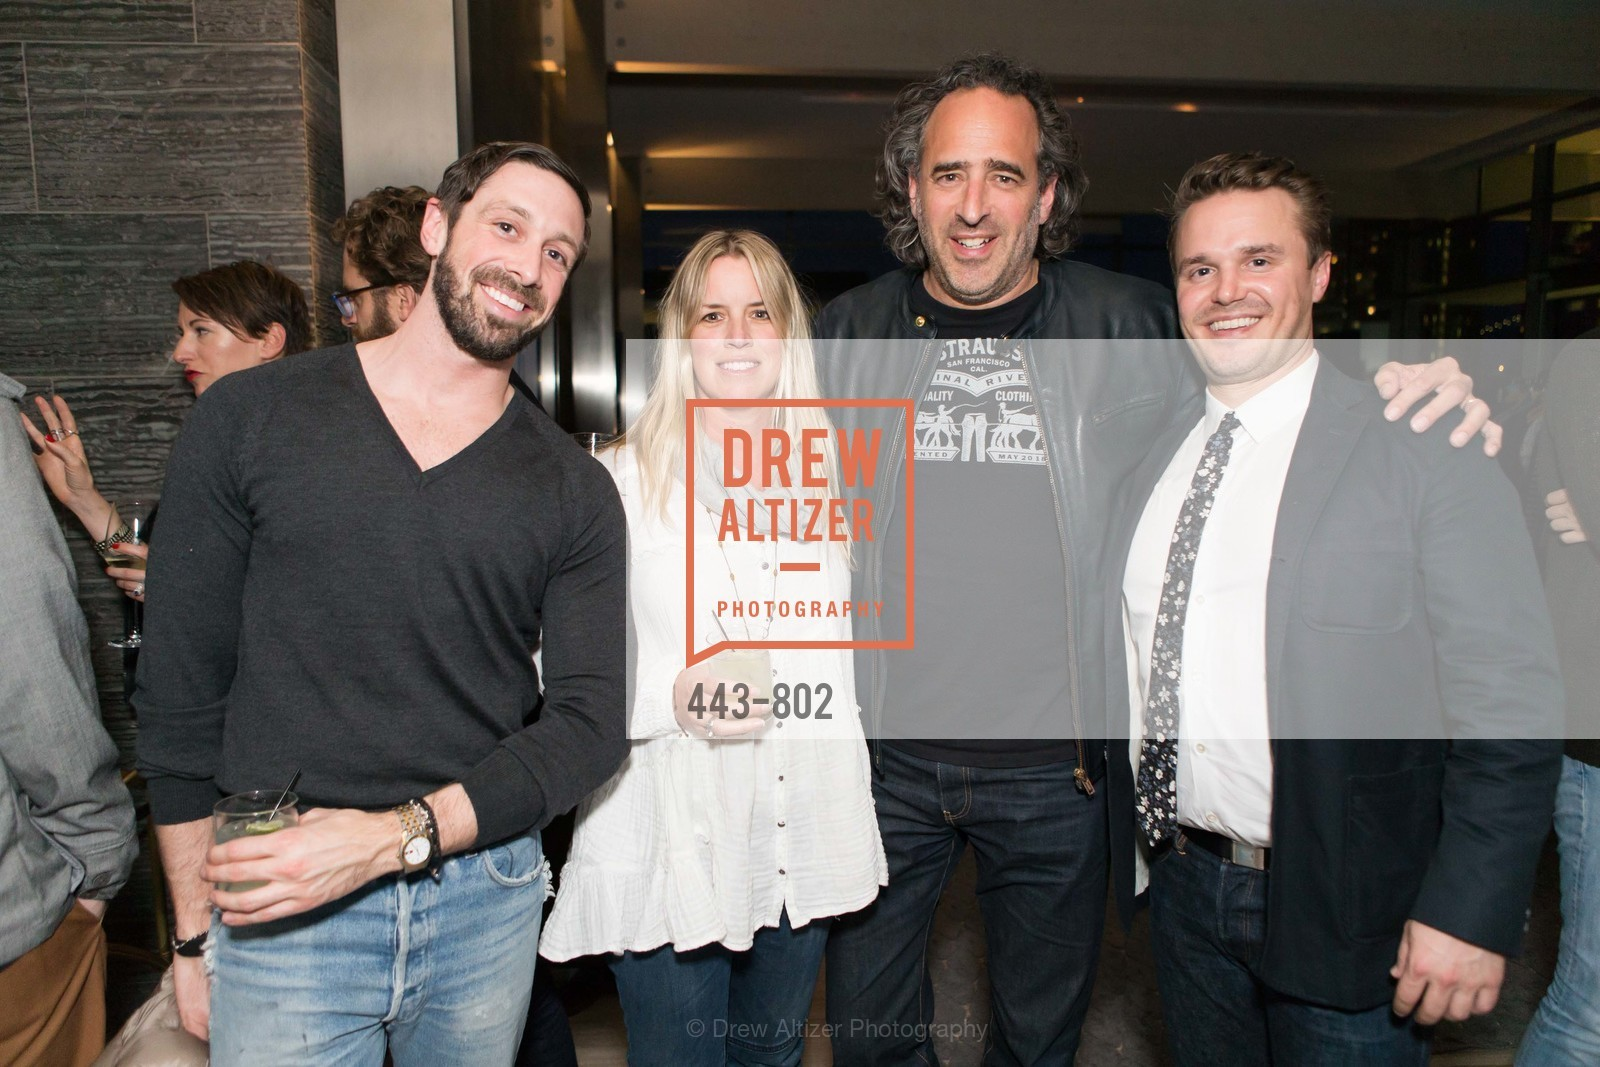 Jimmy Everett, Jackie Curly, JC Curly, Michael Krueger, MR PORTER Celebrate The San Francisco Issue of The Journal, US, April 23rd, 2015,Drew Altizer, Drew Altizer Photography, full-service agency, private events, San Francisco photographer, photographer california